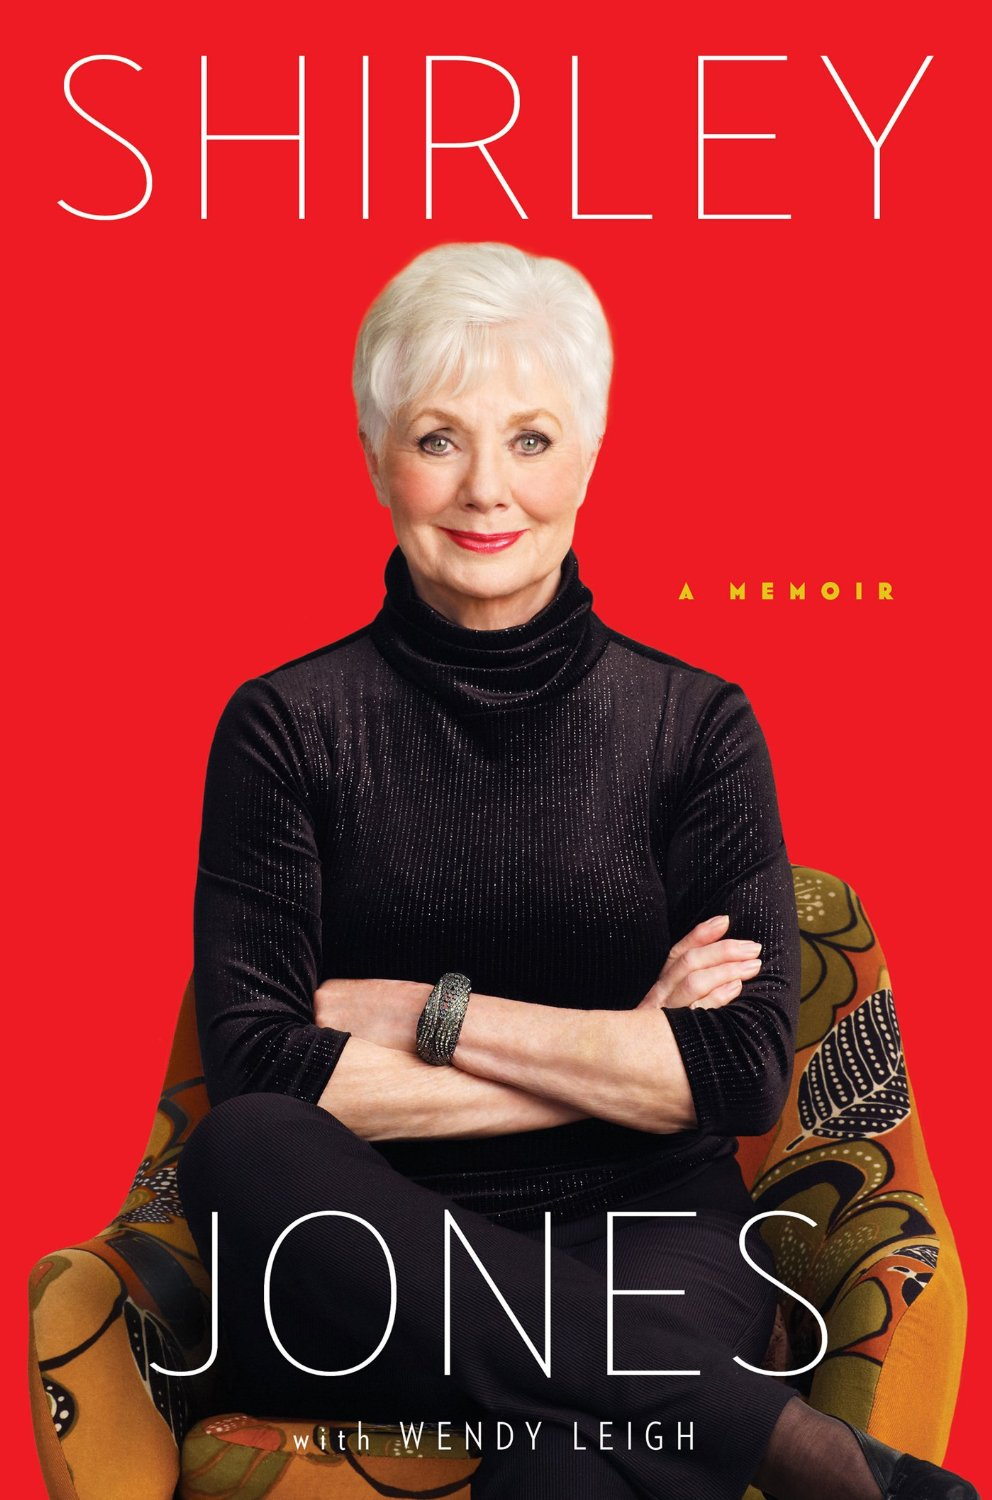 Shirley+Jones+A+Memoir